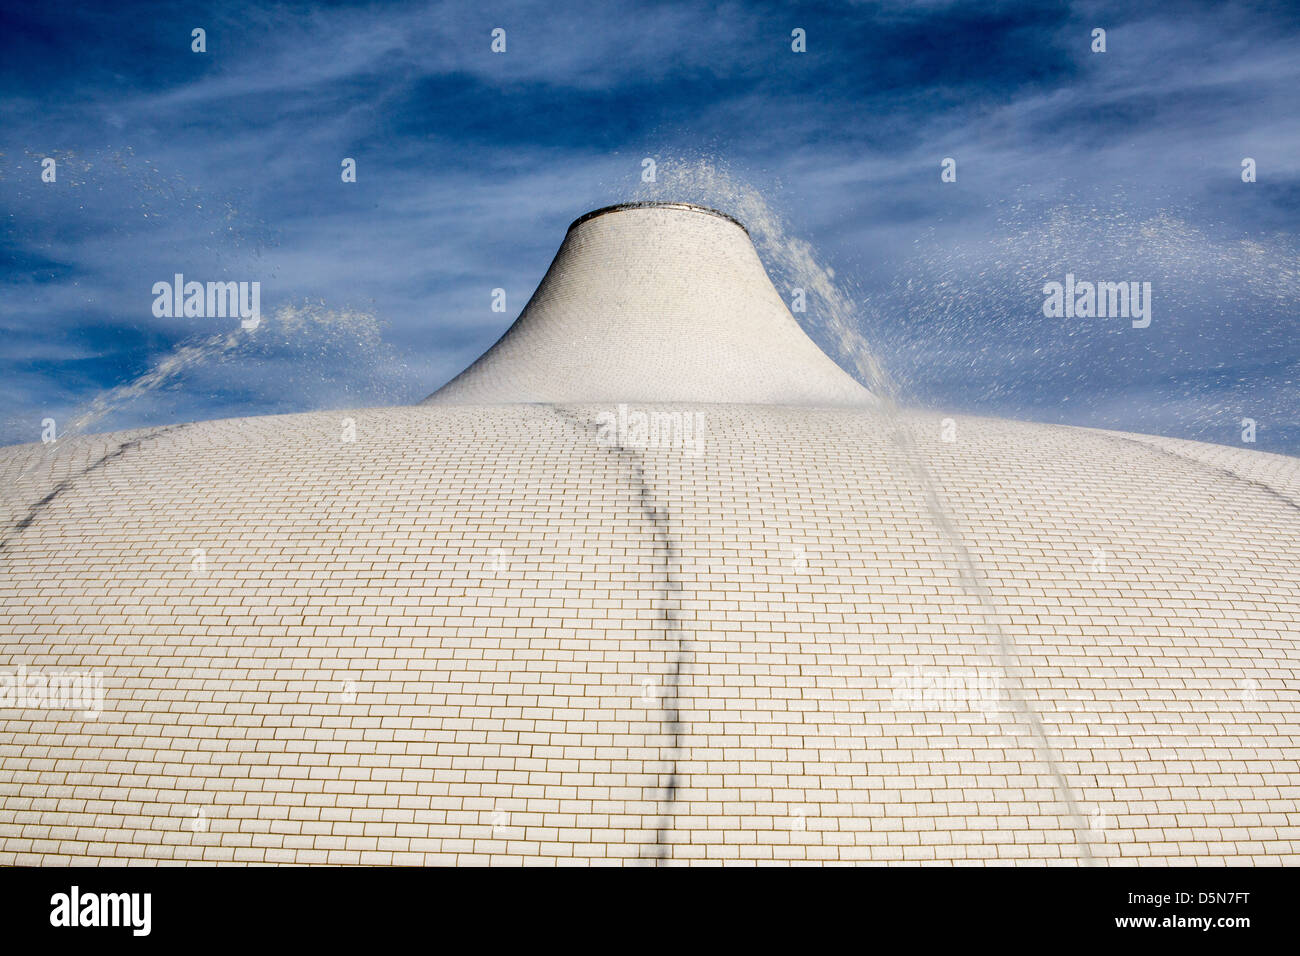 Israel museum shrine of the book roof Stock Photo